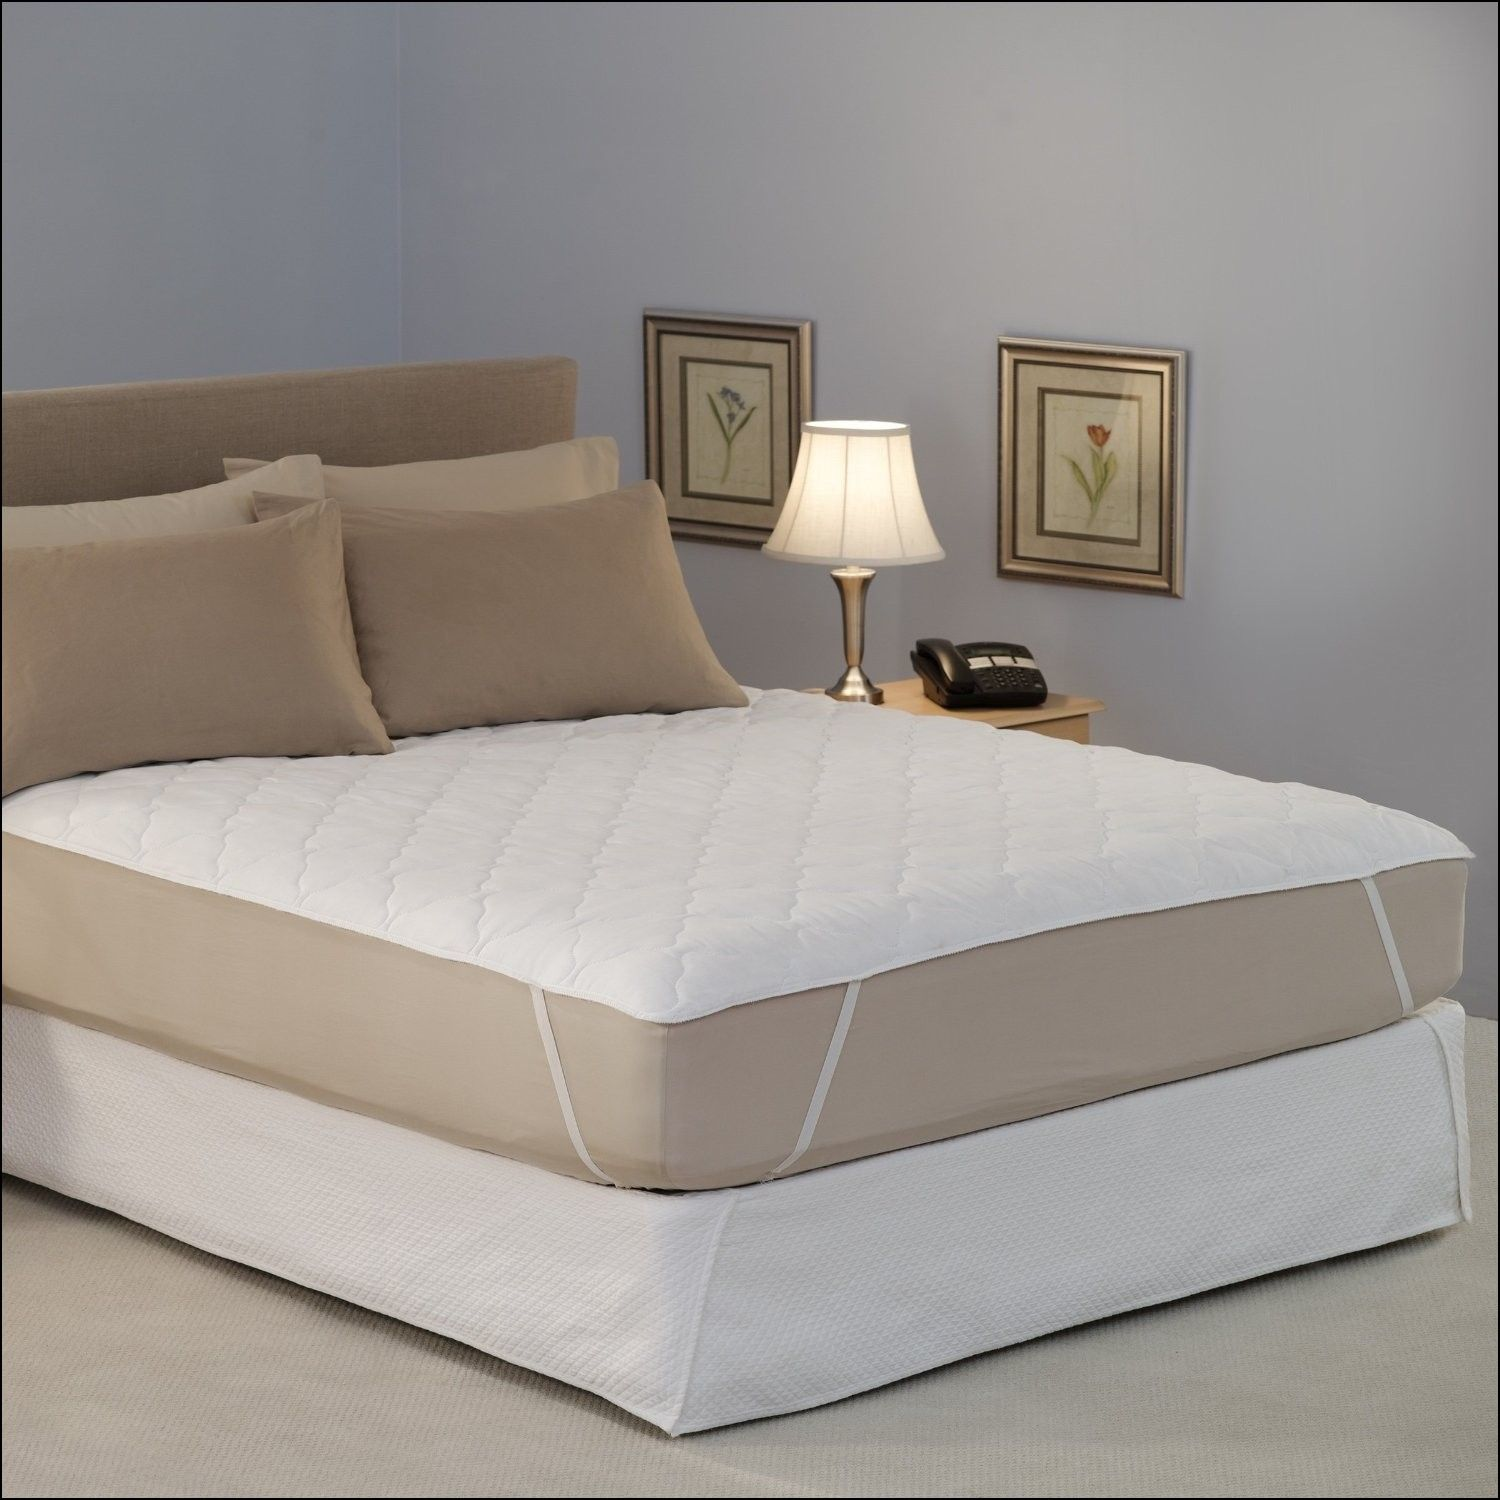 cal king waterbed mattress mattress ideas pinterest mattress